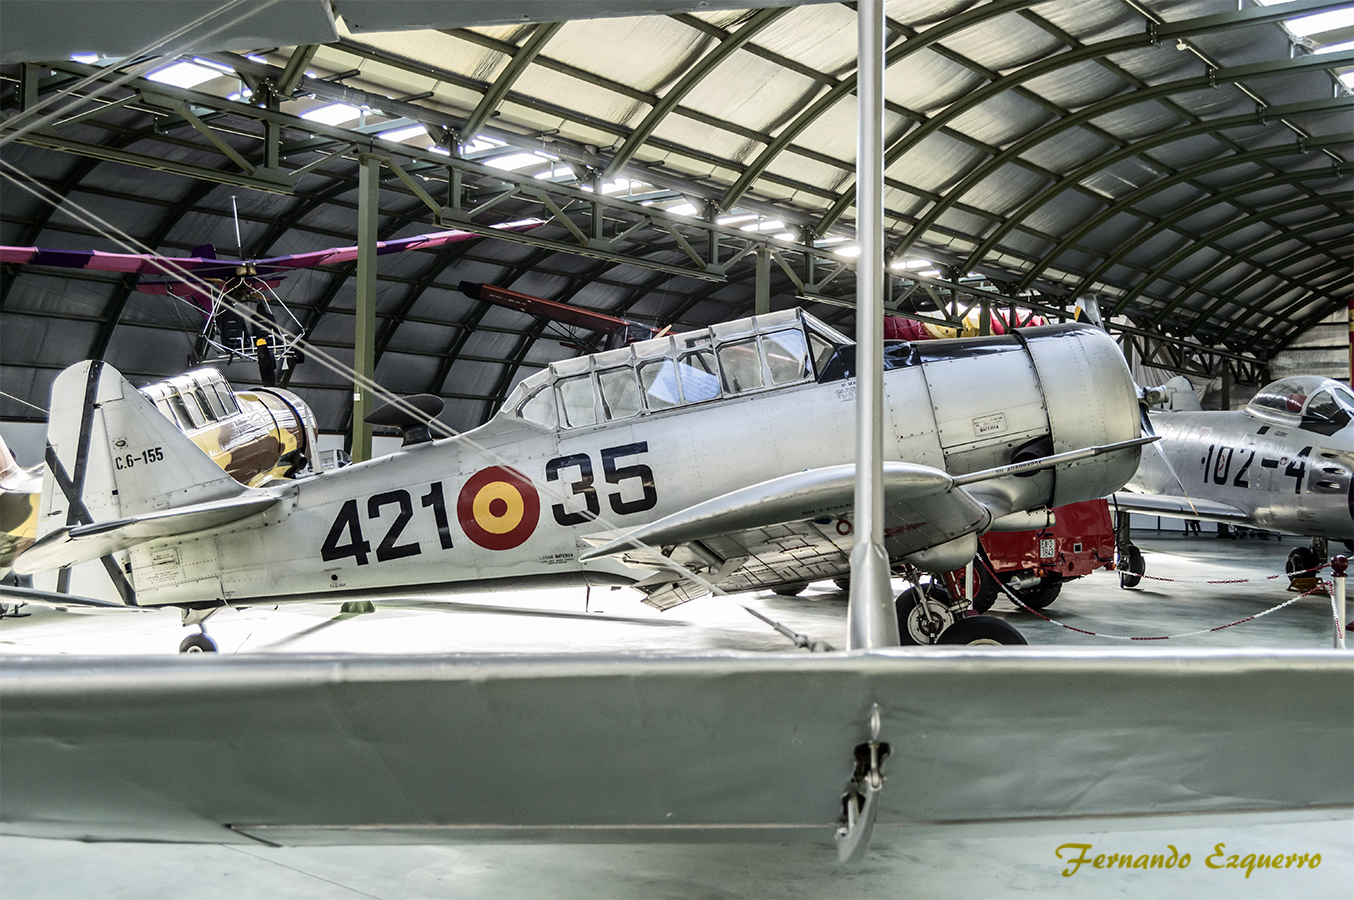 North American T-6 (Texan)